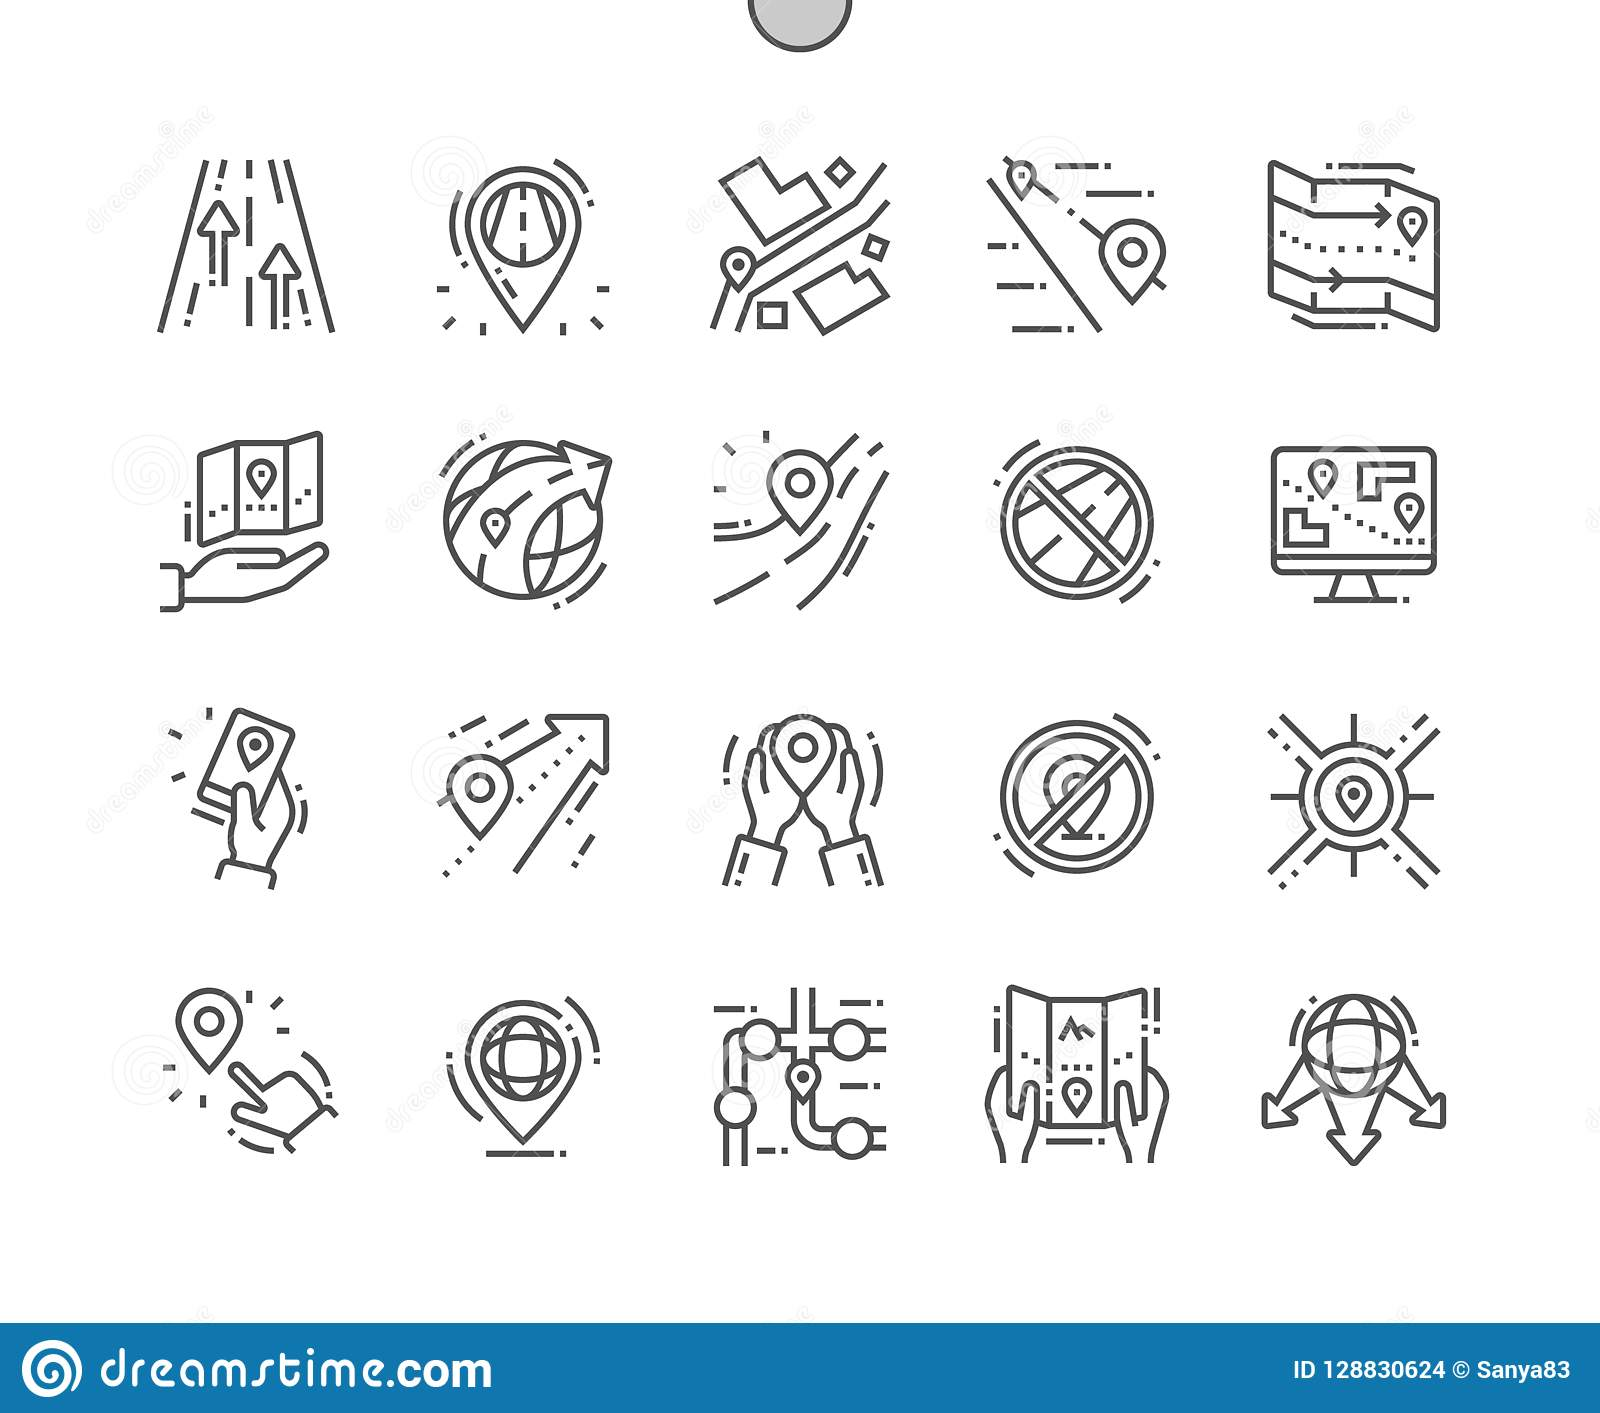 Route Well-crafted Pixel Perfect Vector Thin Line Icons 30 2x Grid